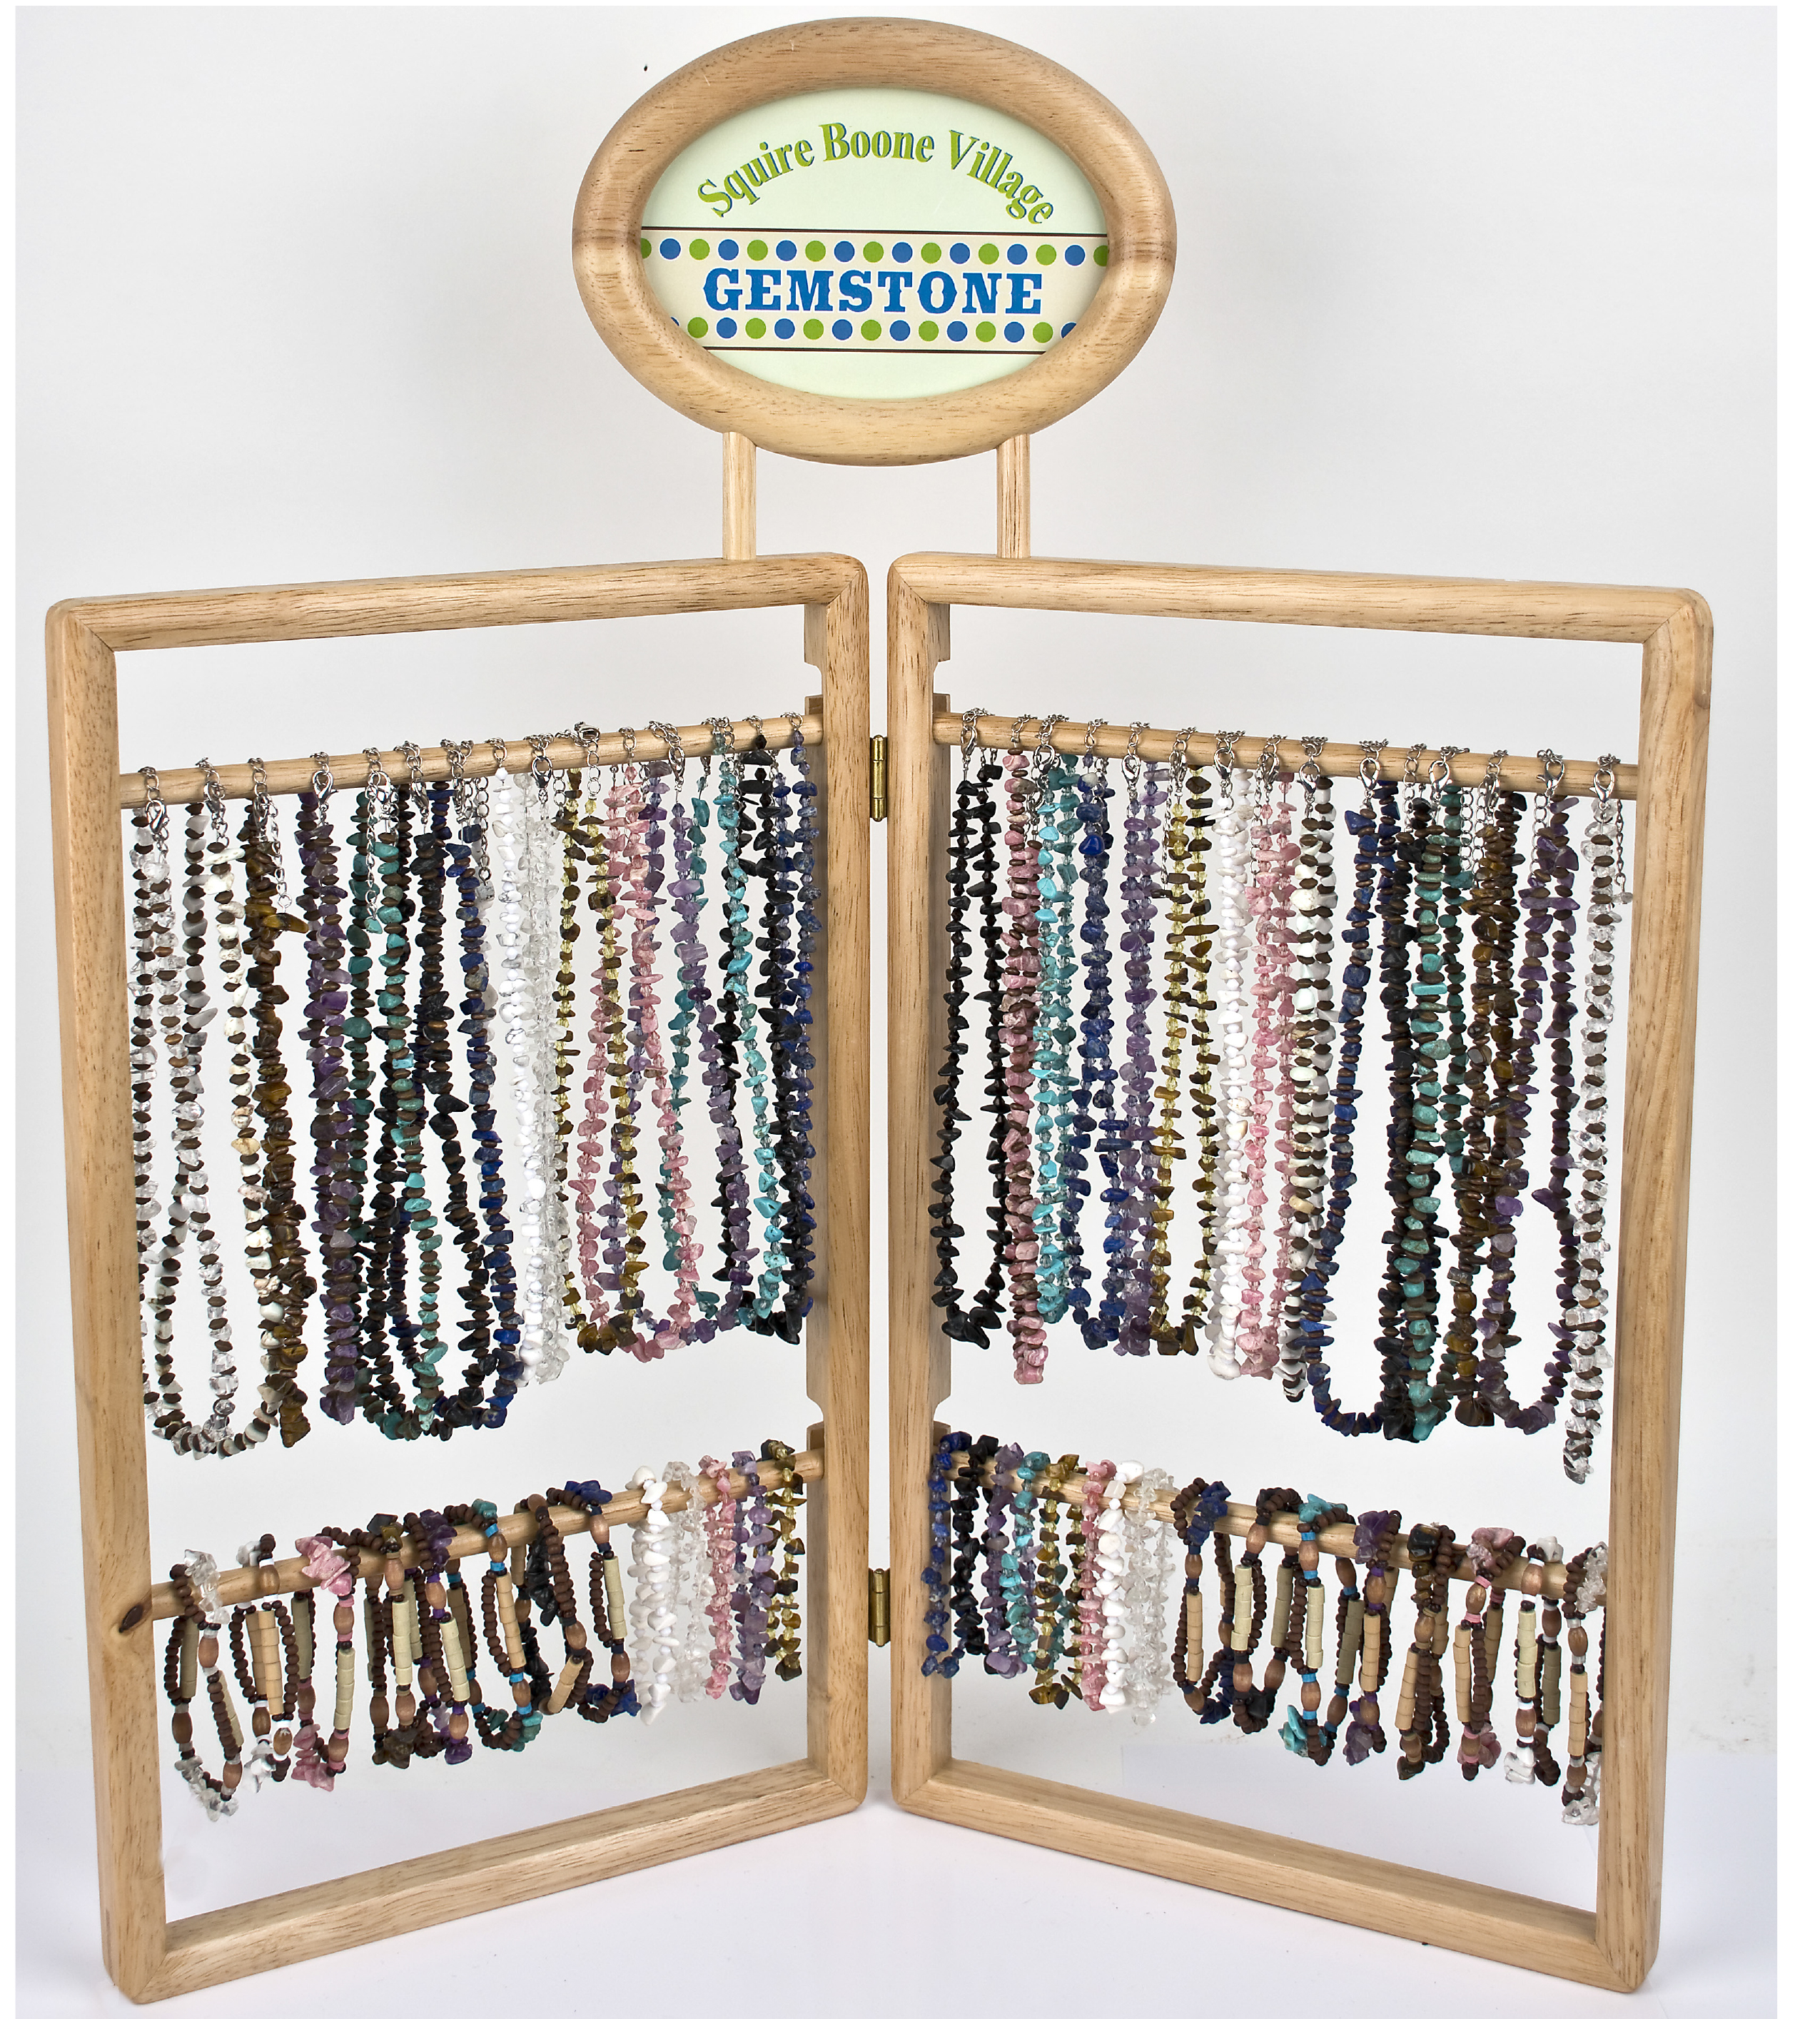 Gemstone & Wood & Crystal Window Display Ad